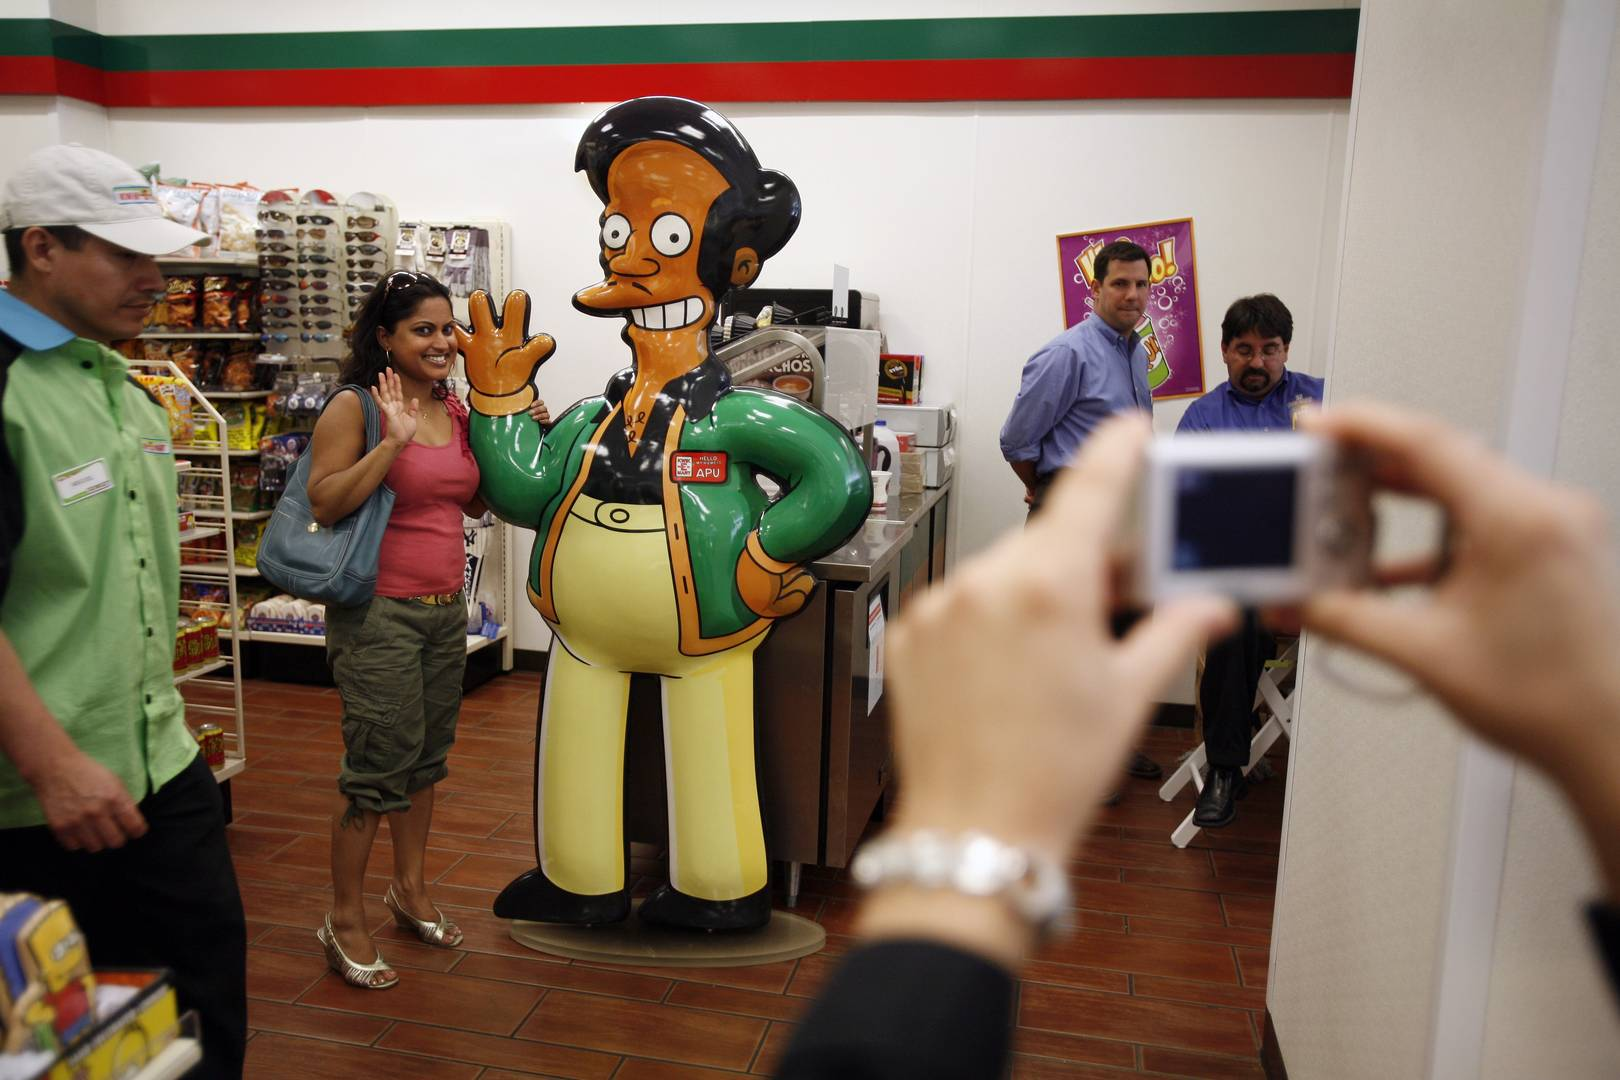 The Simpsons, Apu